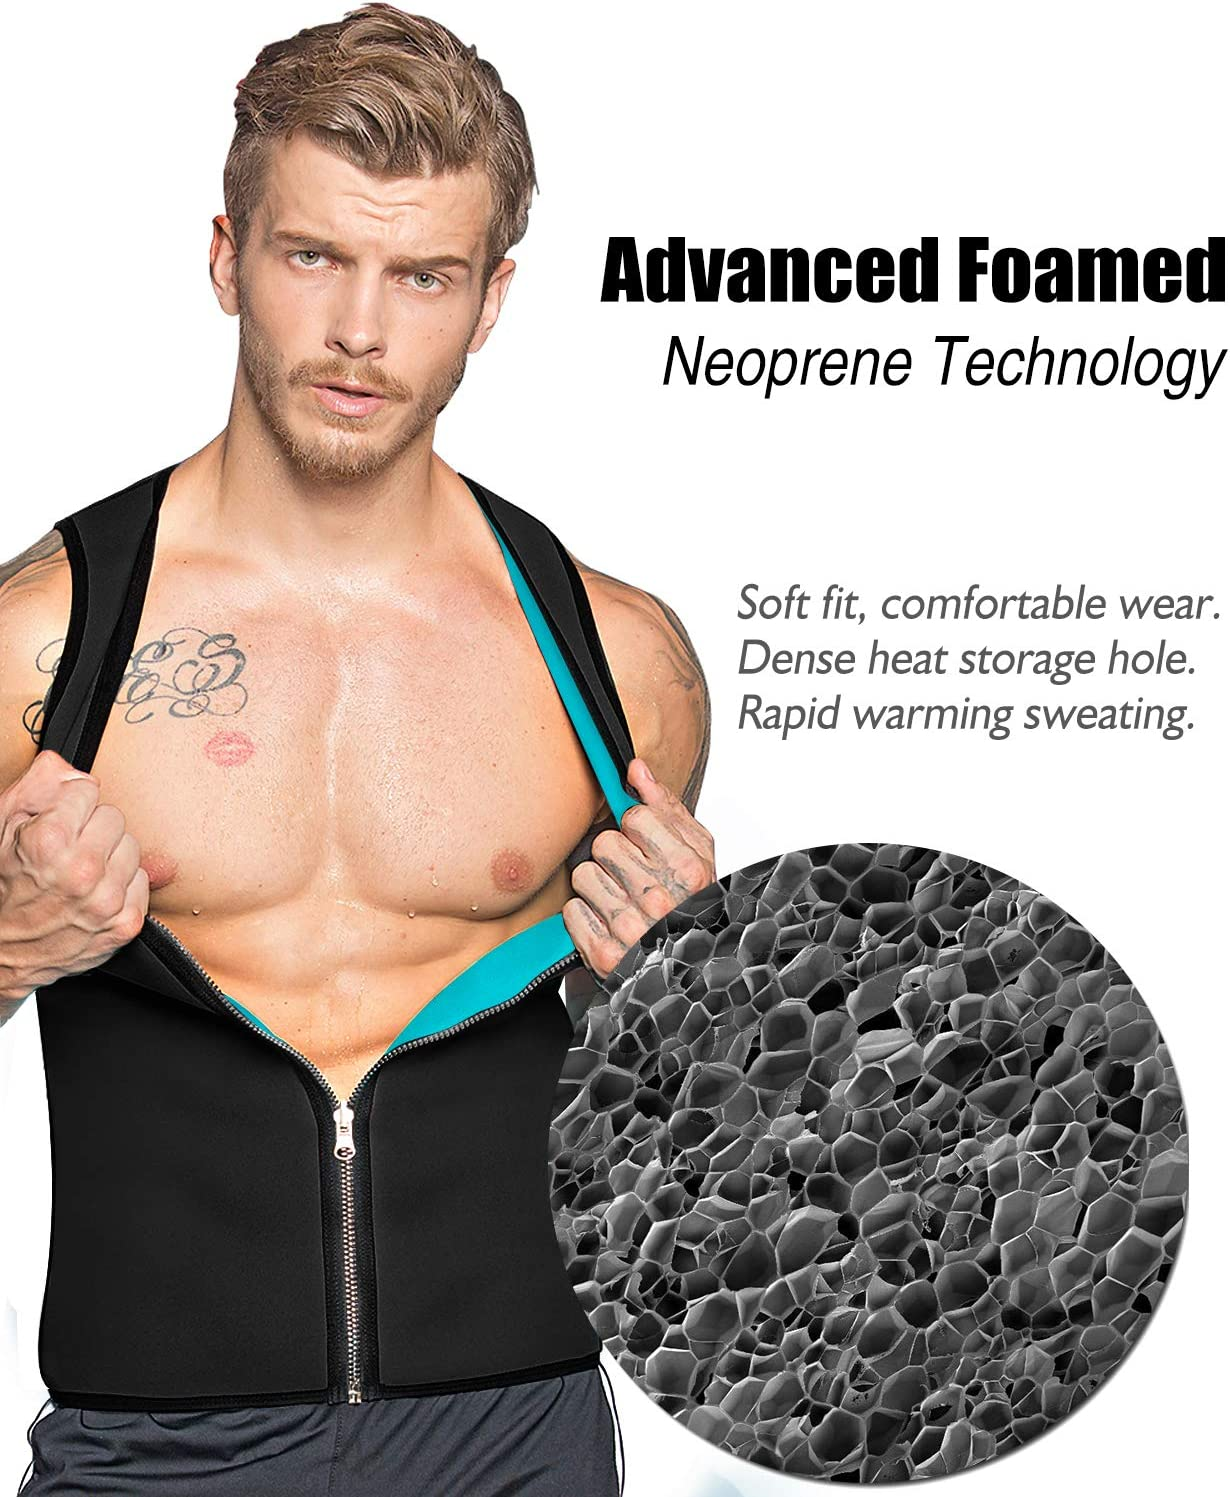 DoLoveY Men Sweat Sauna Vest Waist Trainer Hot Neoprene Corset Weight Loss Shaper Slimming Tank Top Workout Shirt